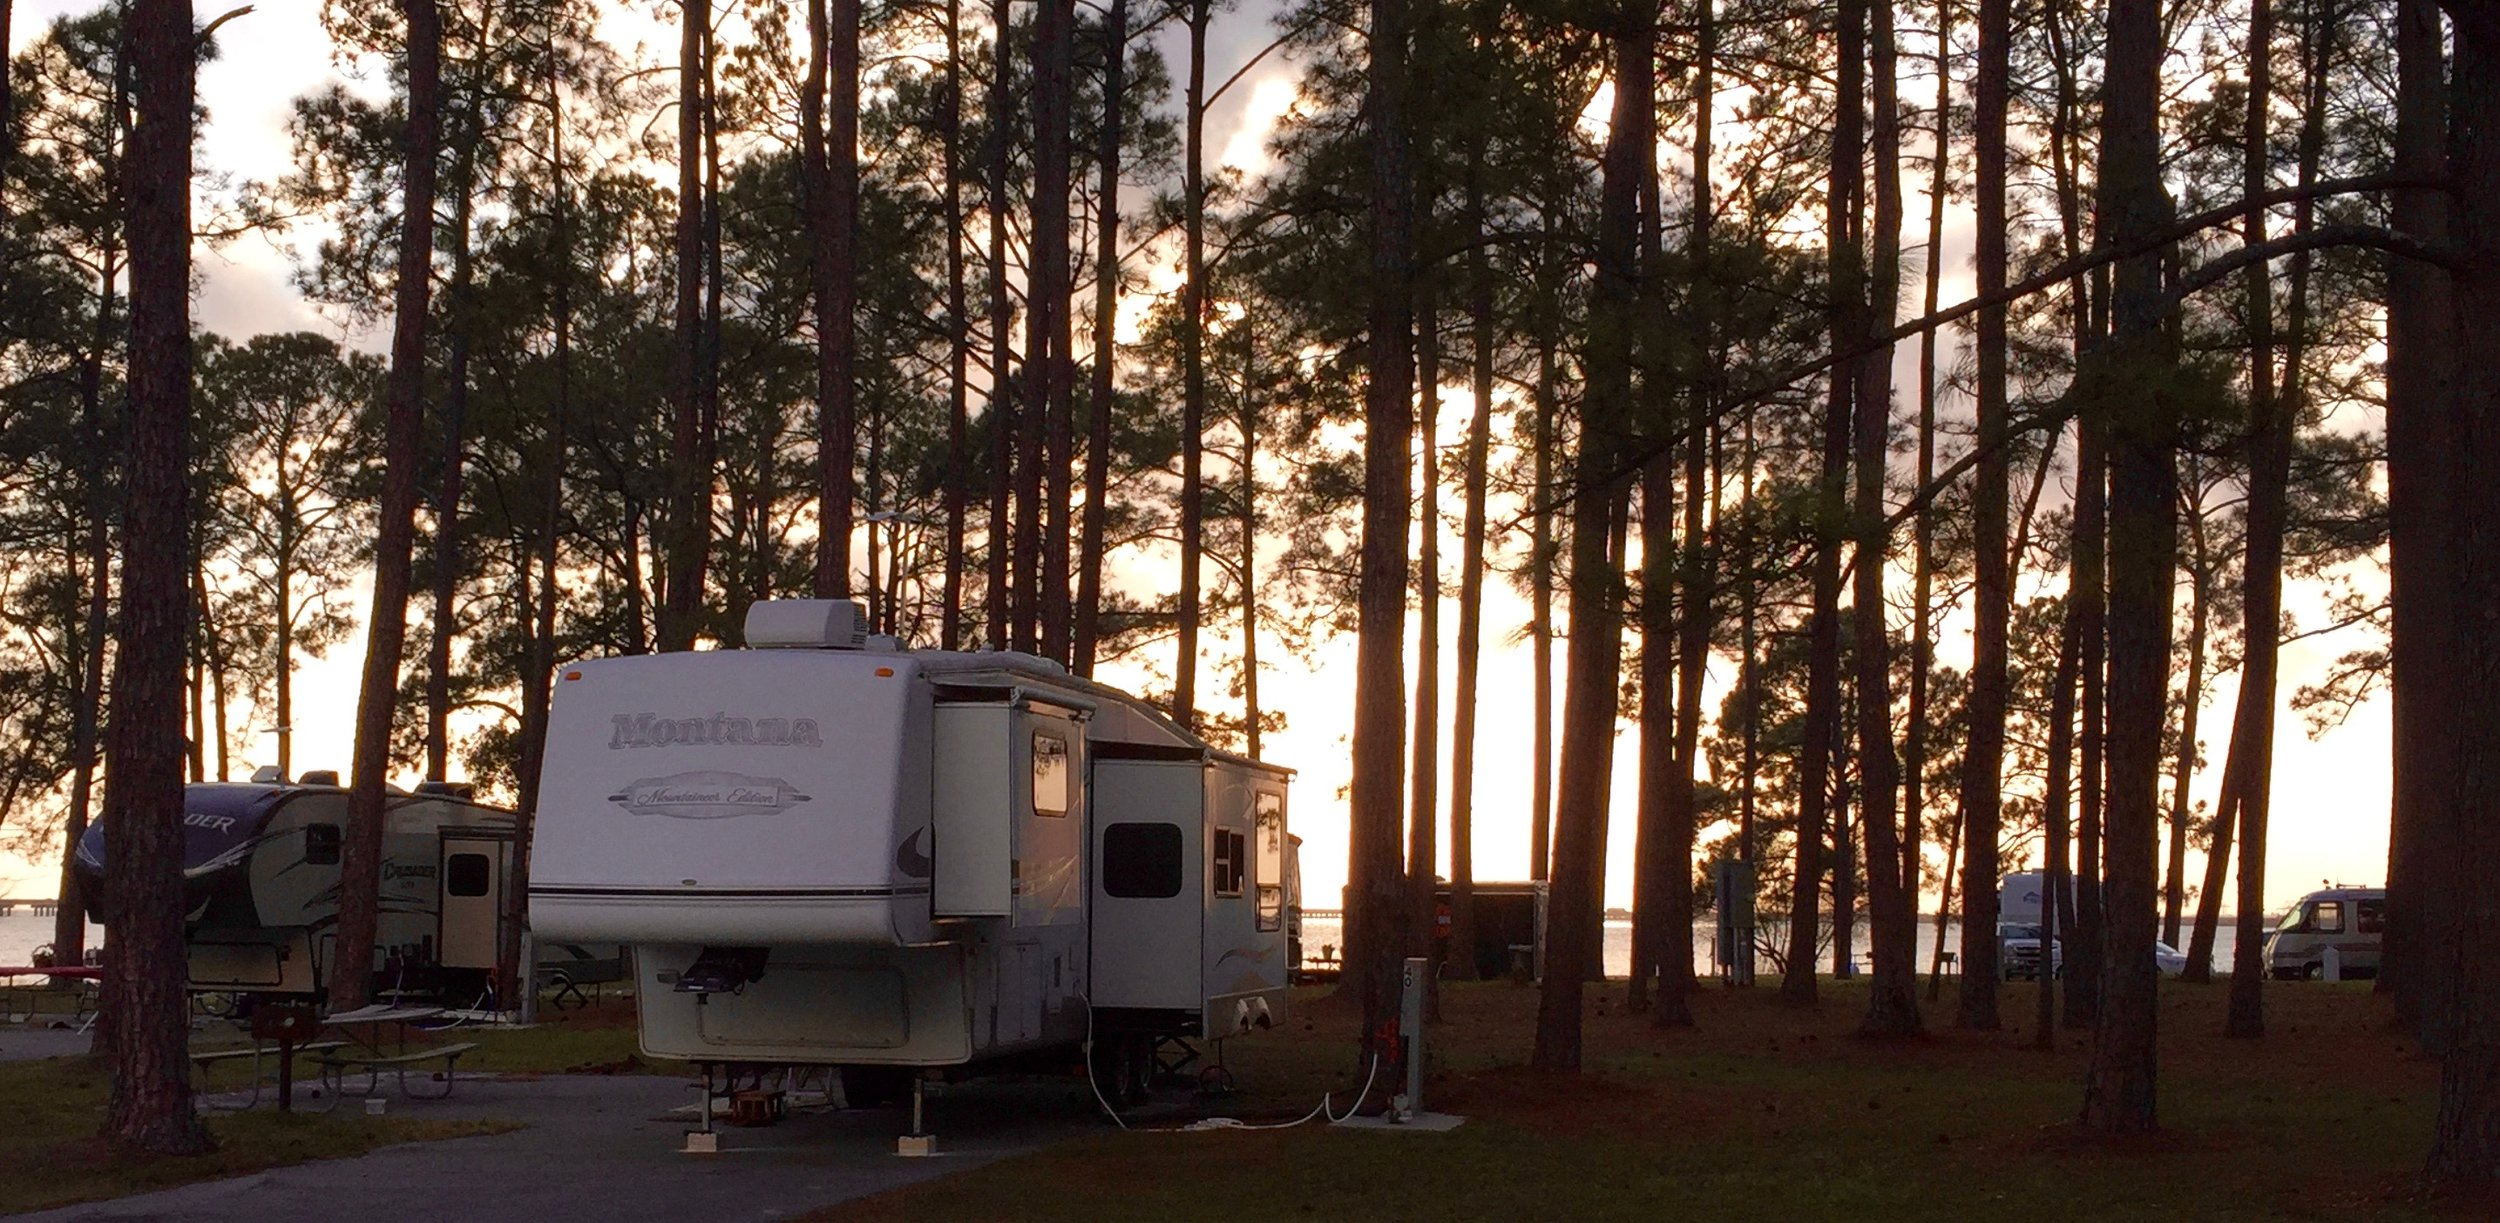 A campground on Mobile Bay